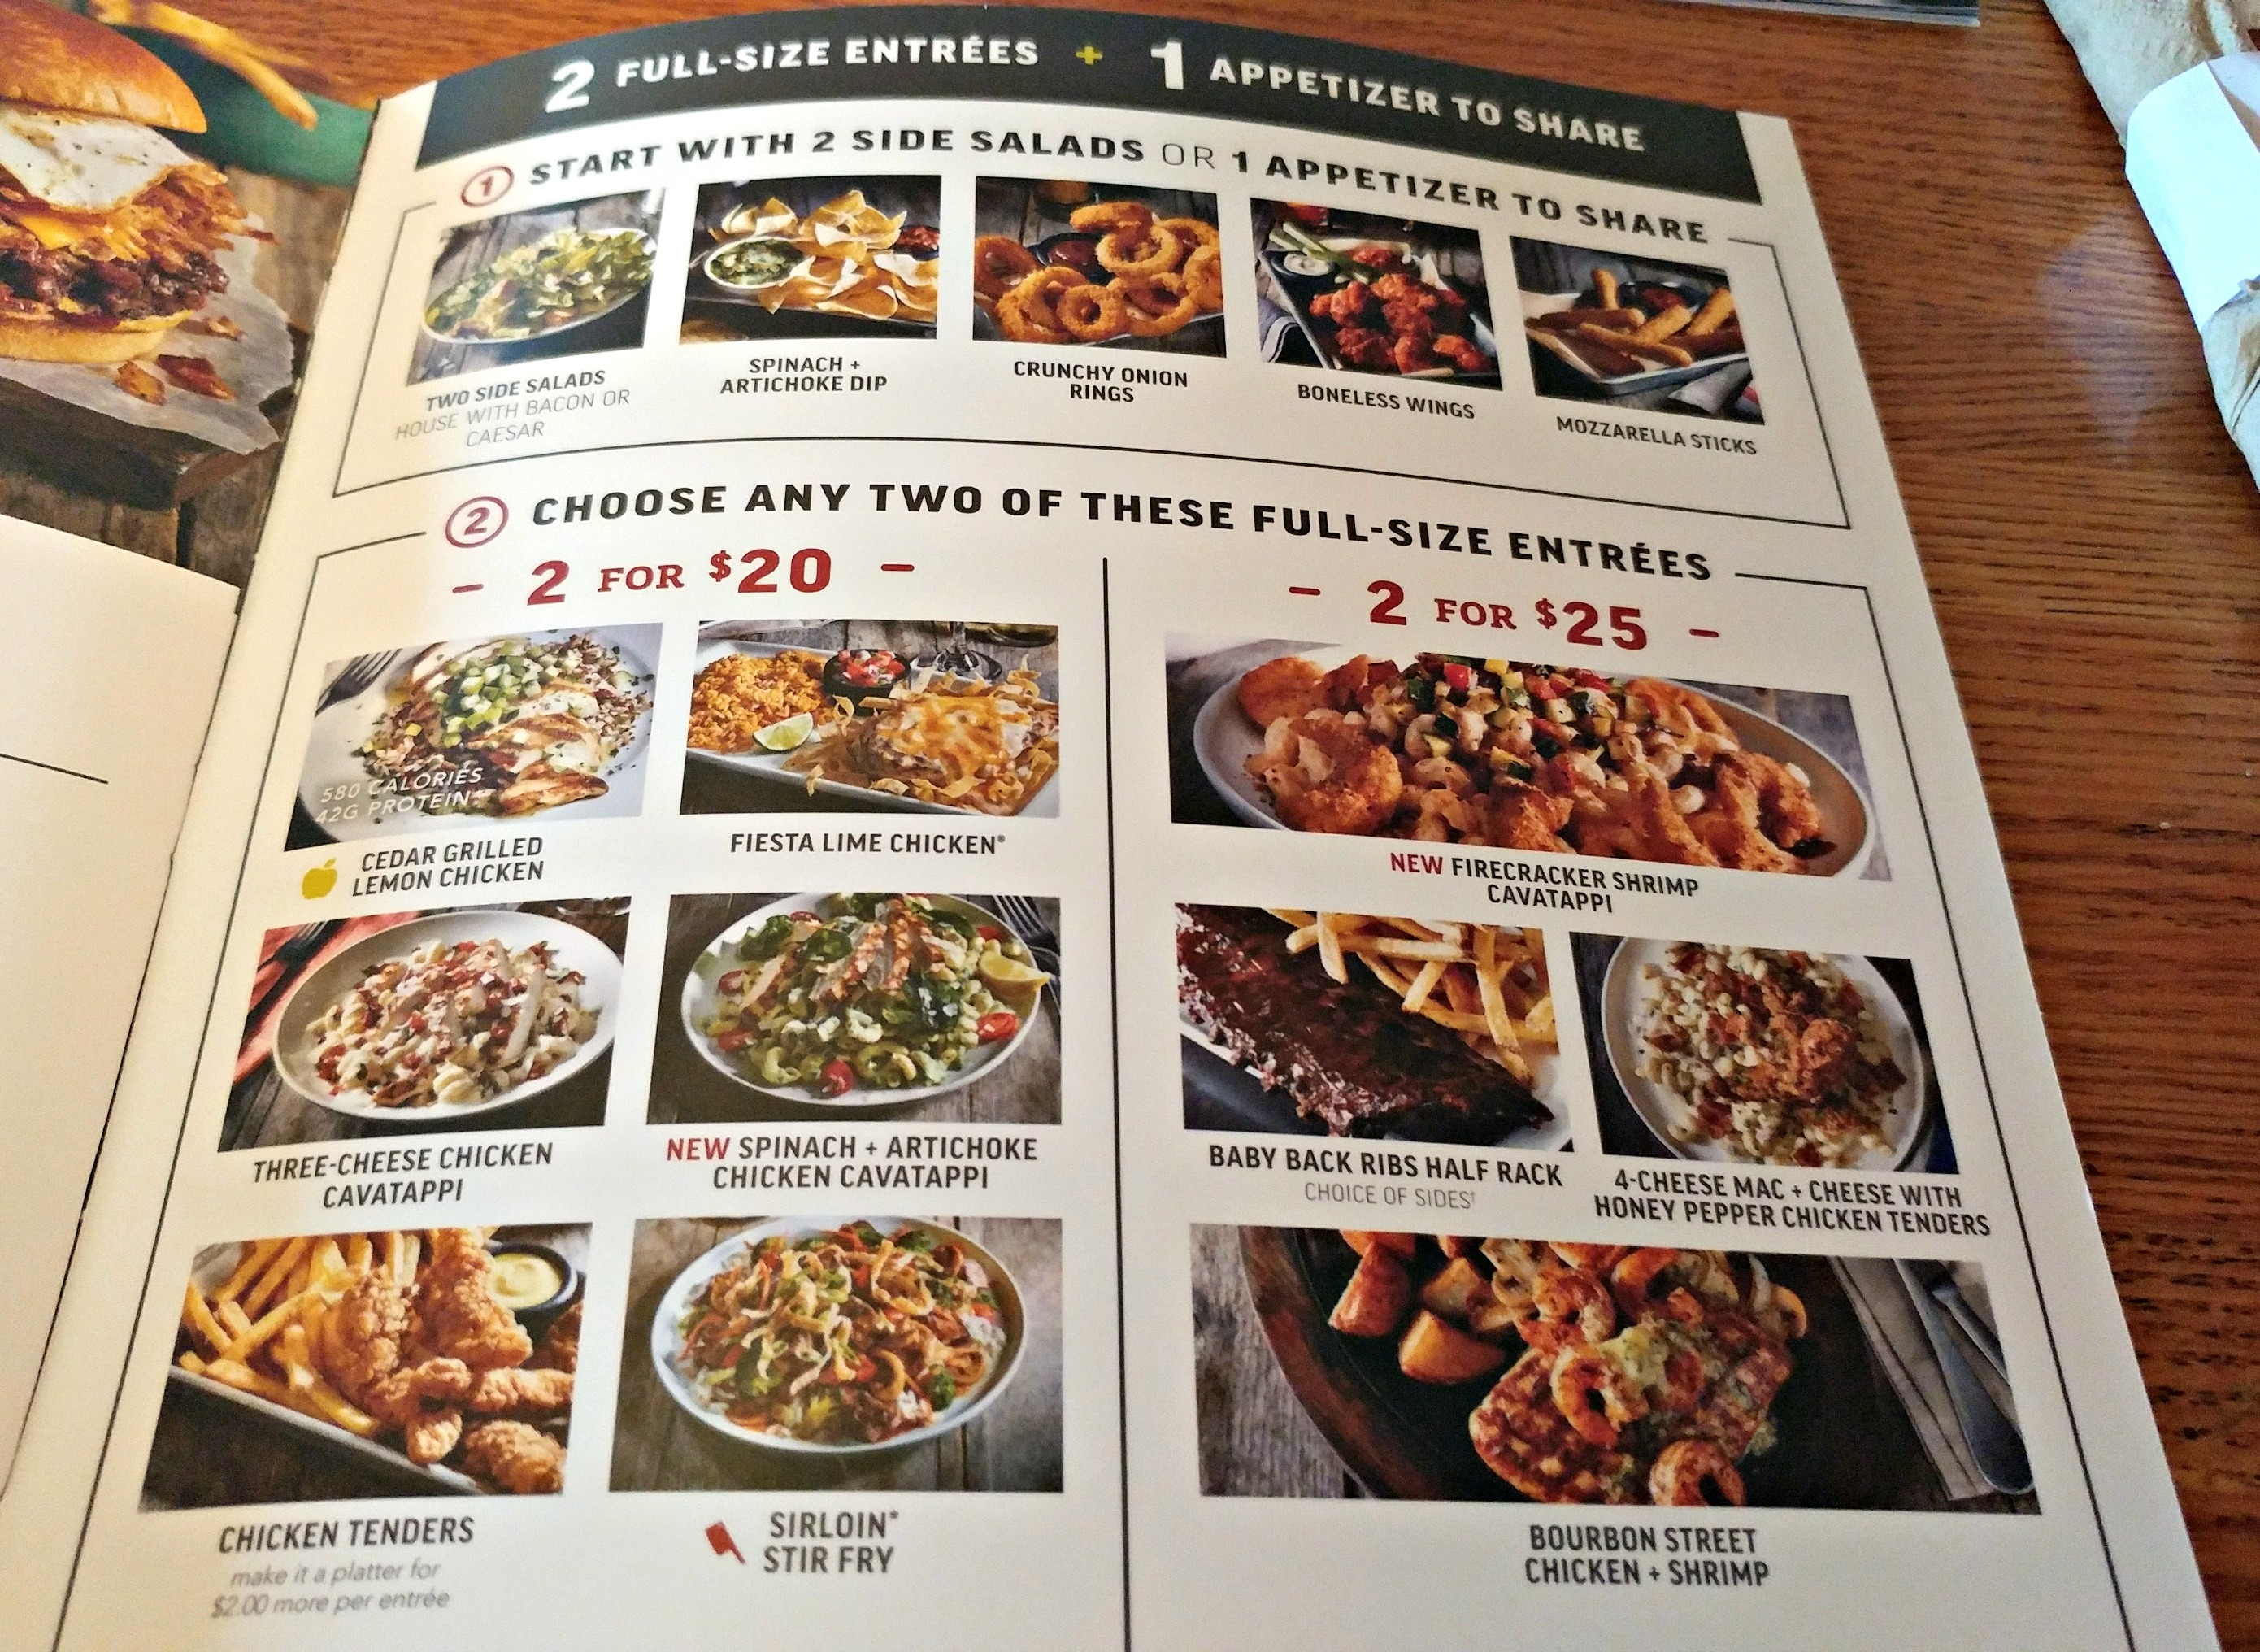 applebee's 2 for $20 menu review - mom's magical miles